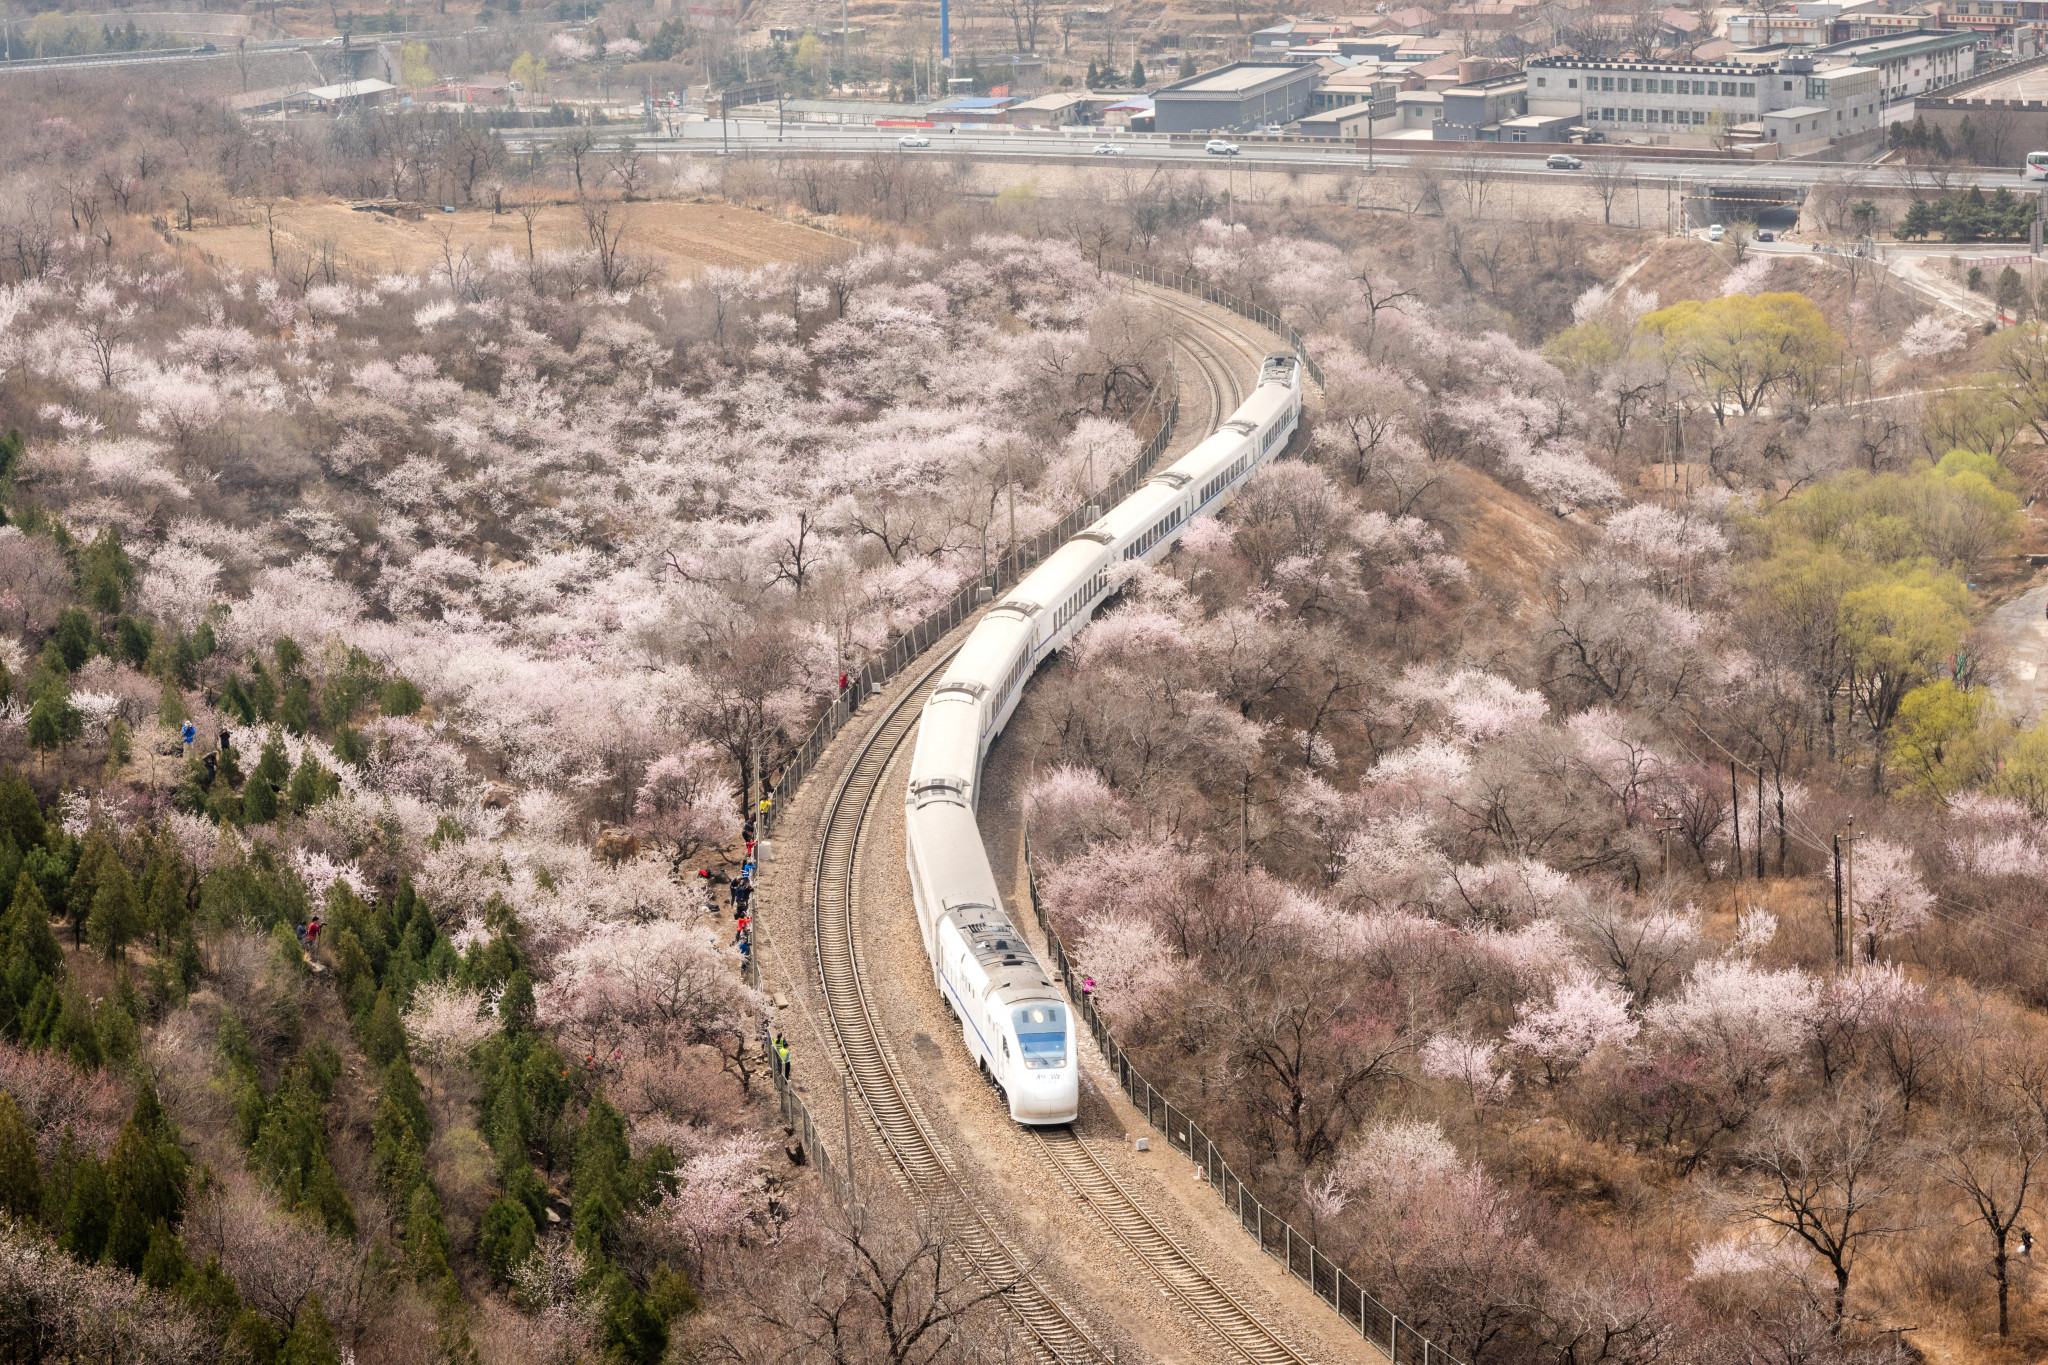 Boost for Beijing 2022 as construction begins on high-speed railway linking host city and Zhangjiakou